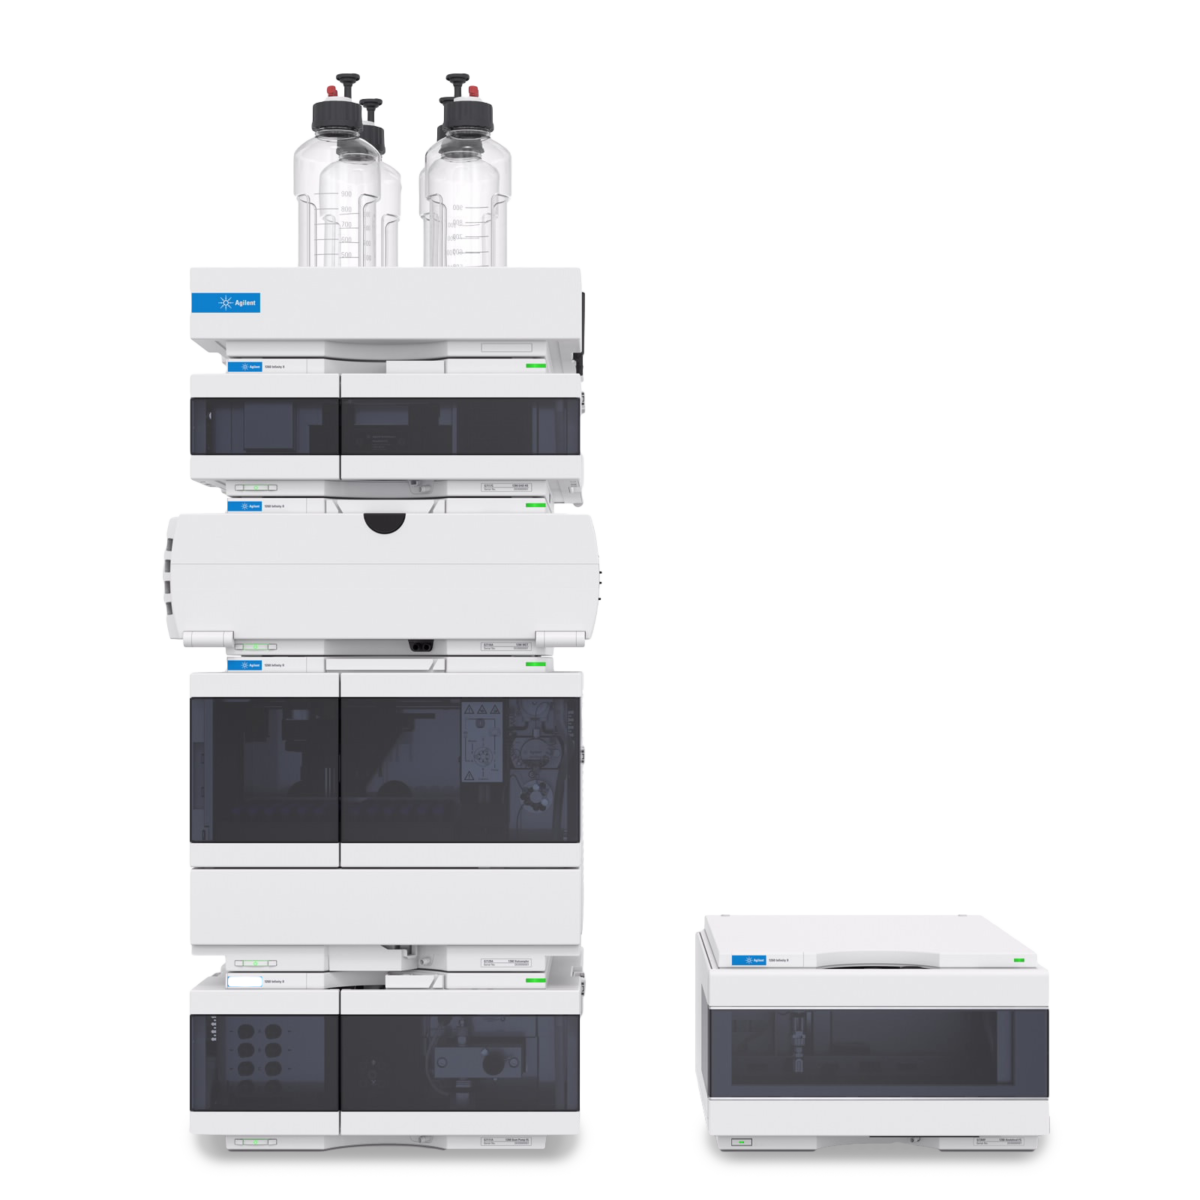 Agilent 1260 Infinity II Analytical-Scale LC Purification System